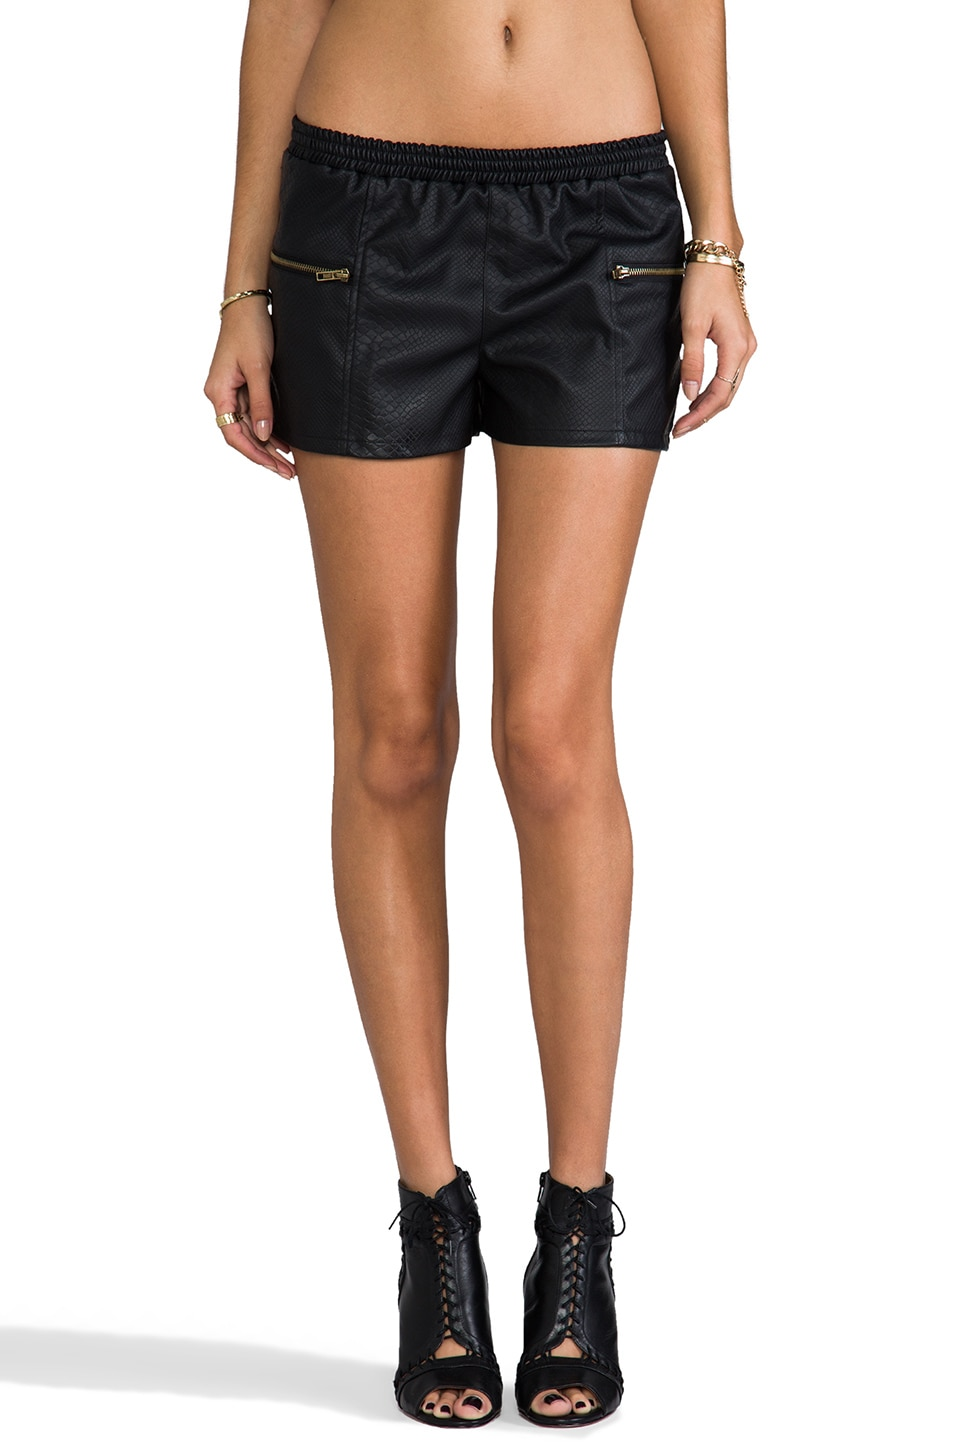 BB Dakota Ionna Embossed Shorts in Black